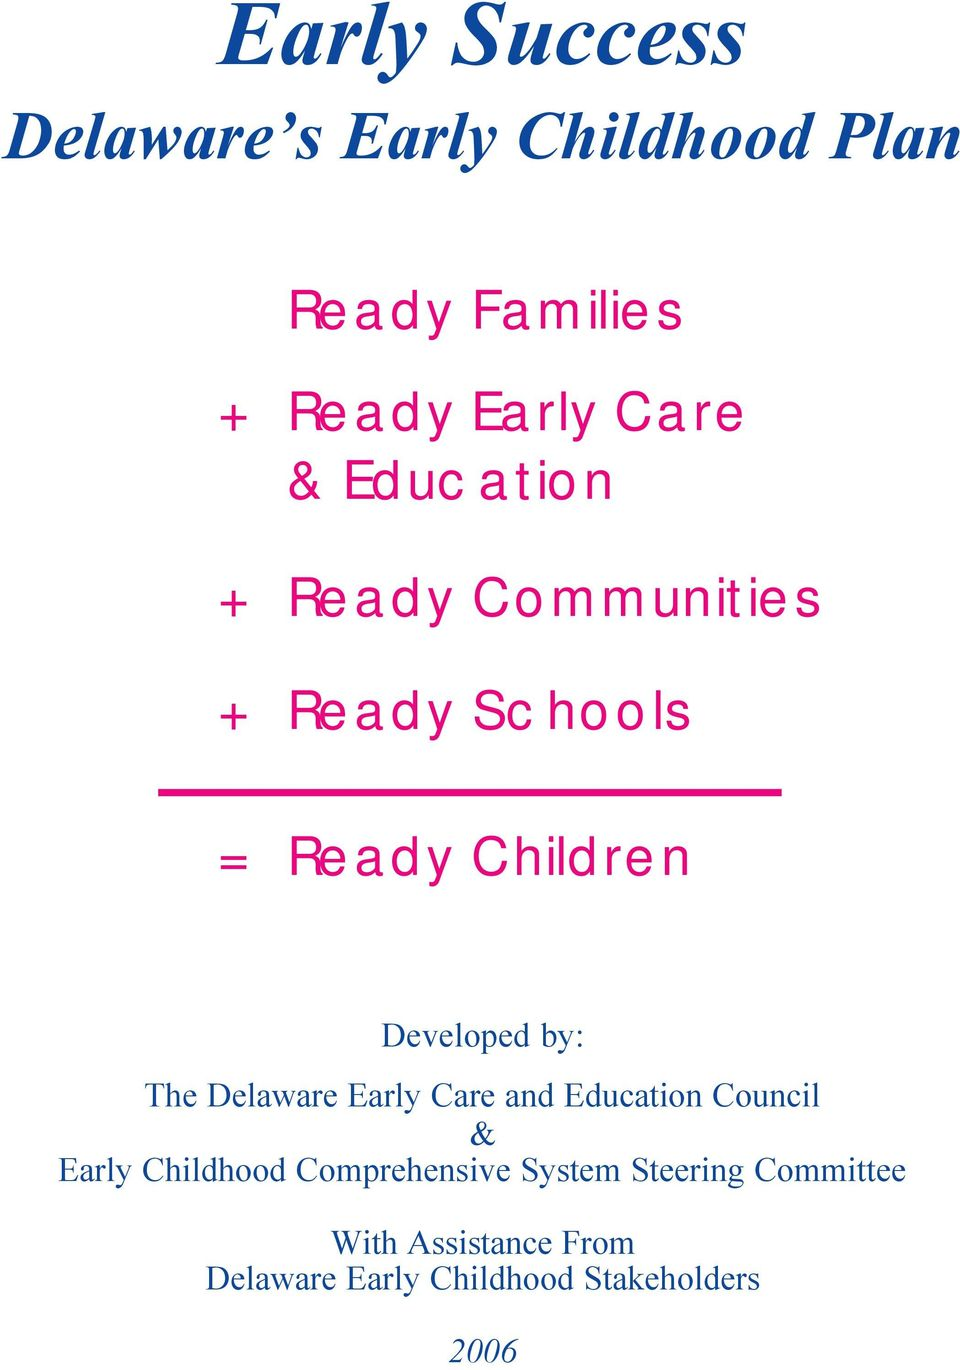 Delaware Early Care and Education Council & Early Childhood Comprehensive System